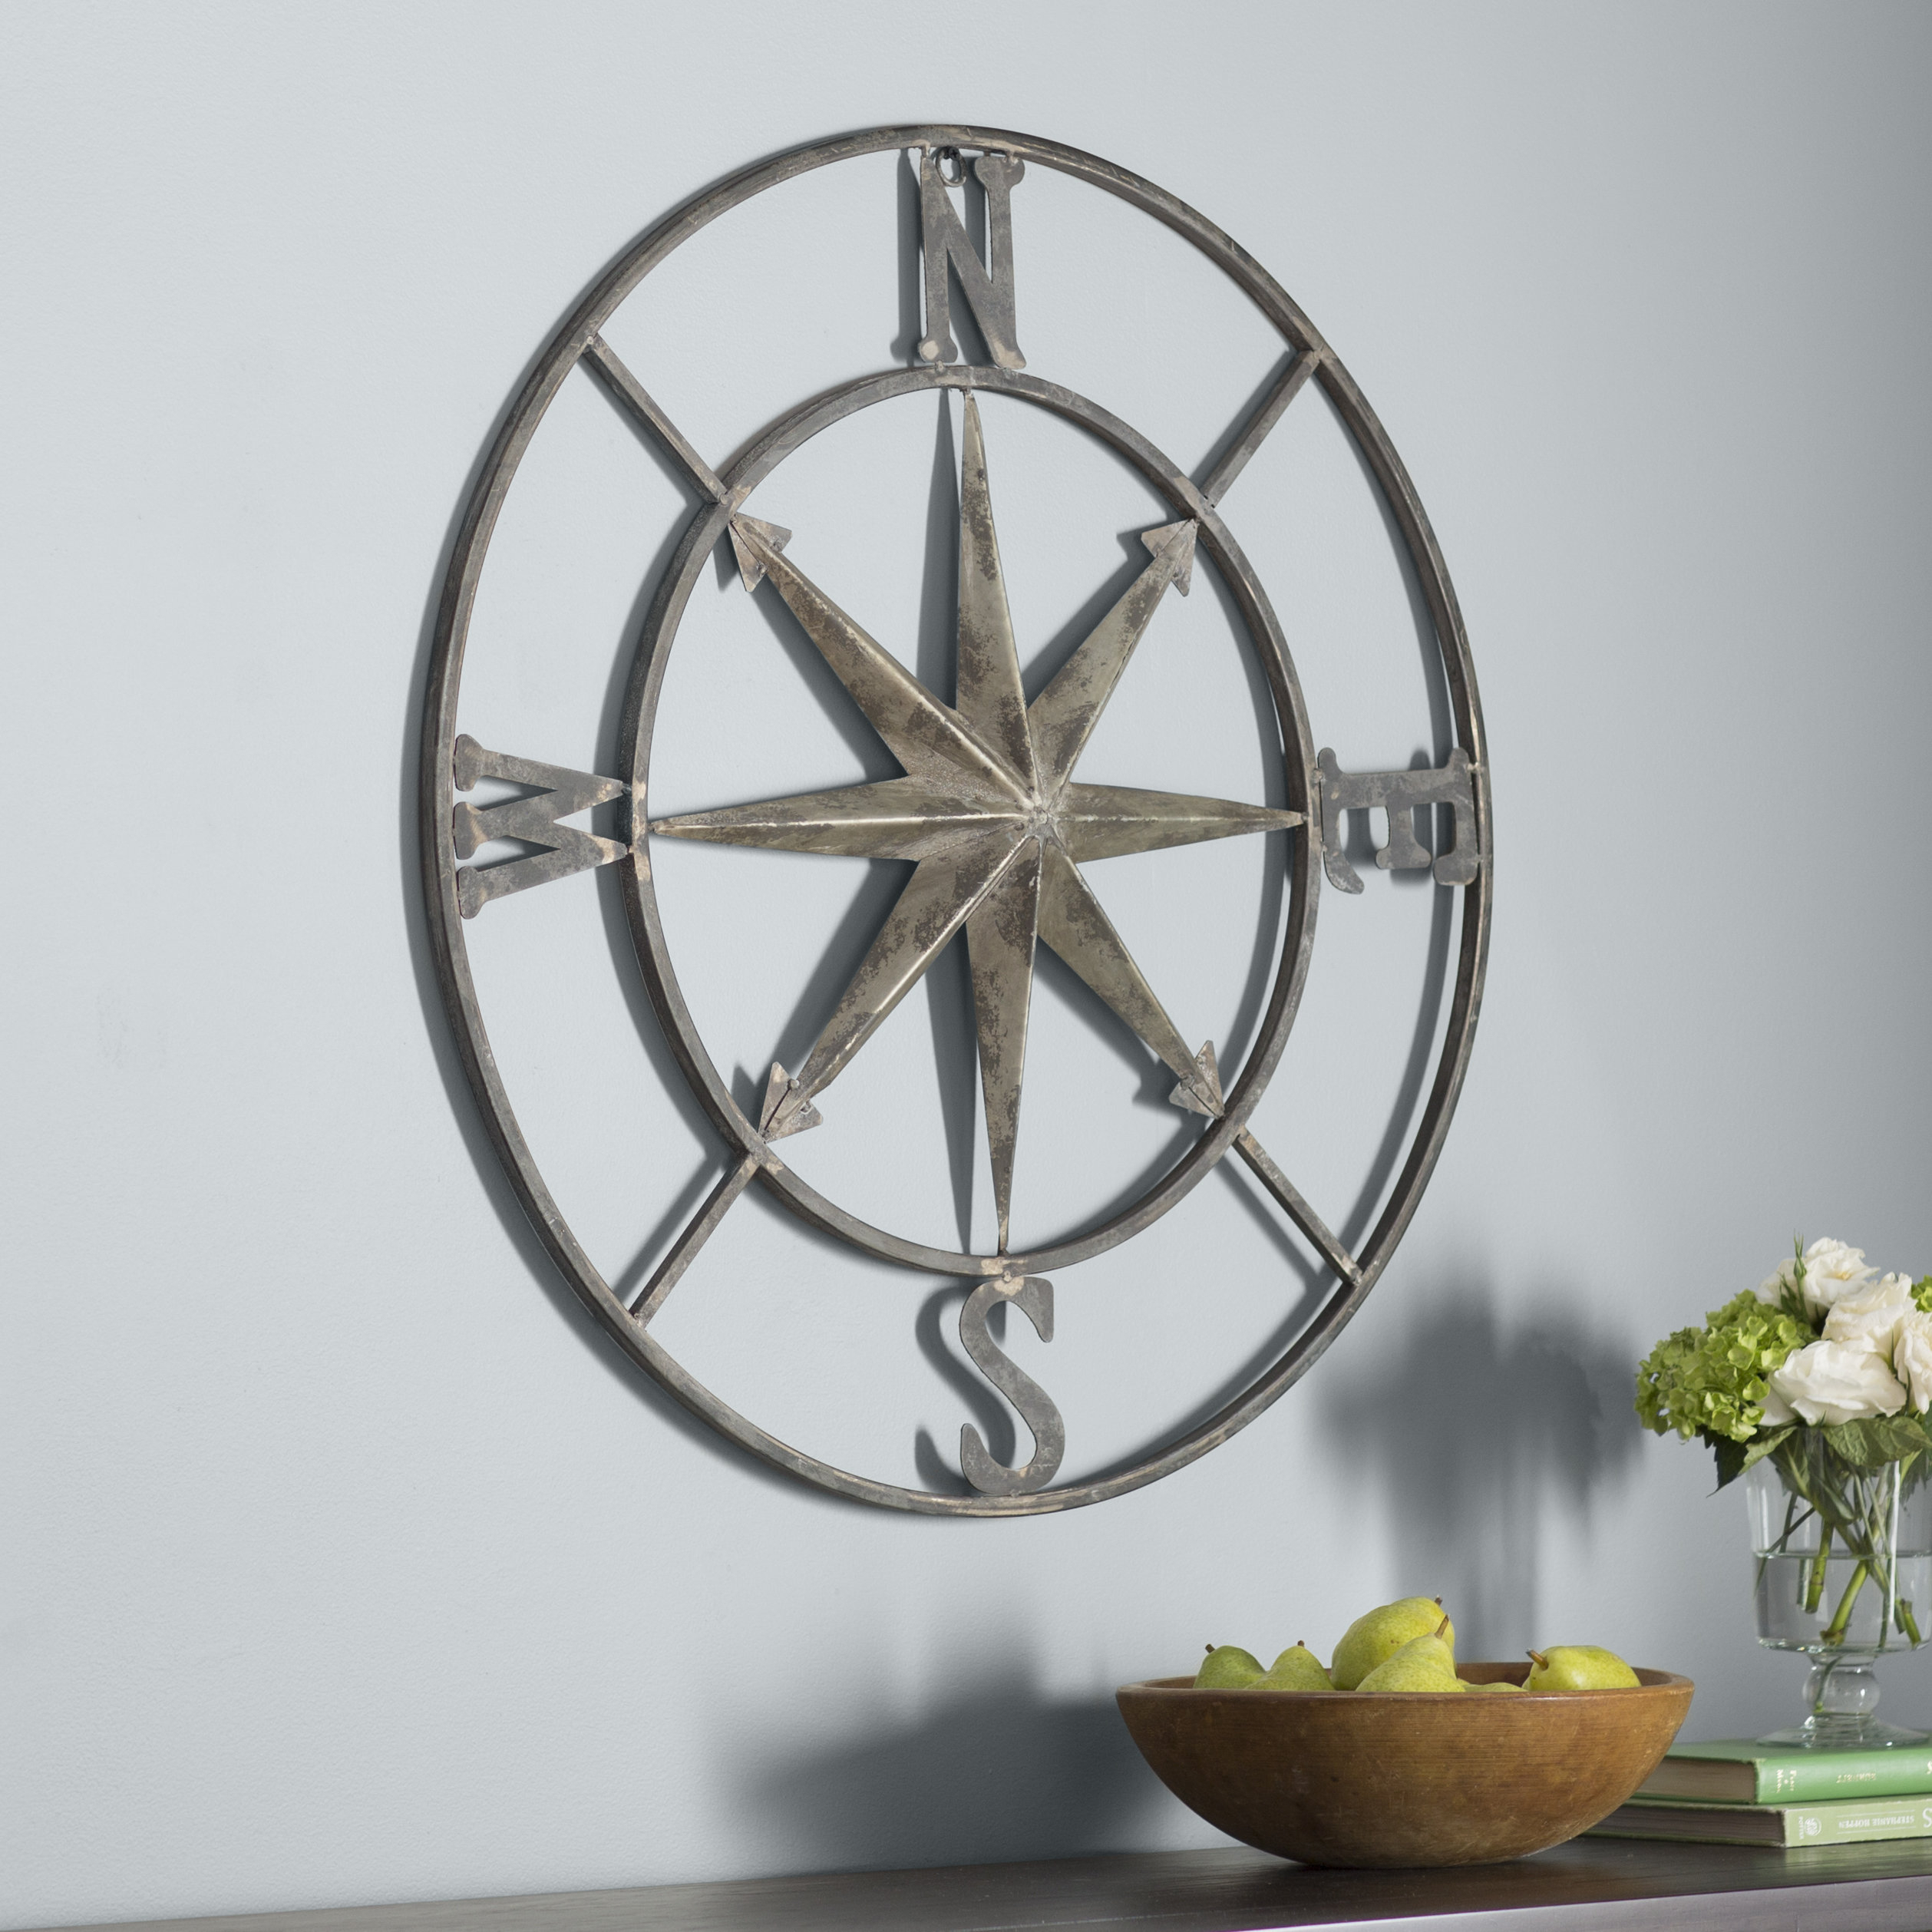 Three Posts Round Compass Wall Décor & Reviews | Wayfair Intended For Round Compass Wall Decor (View 2 of 30)